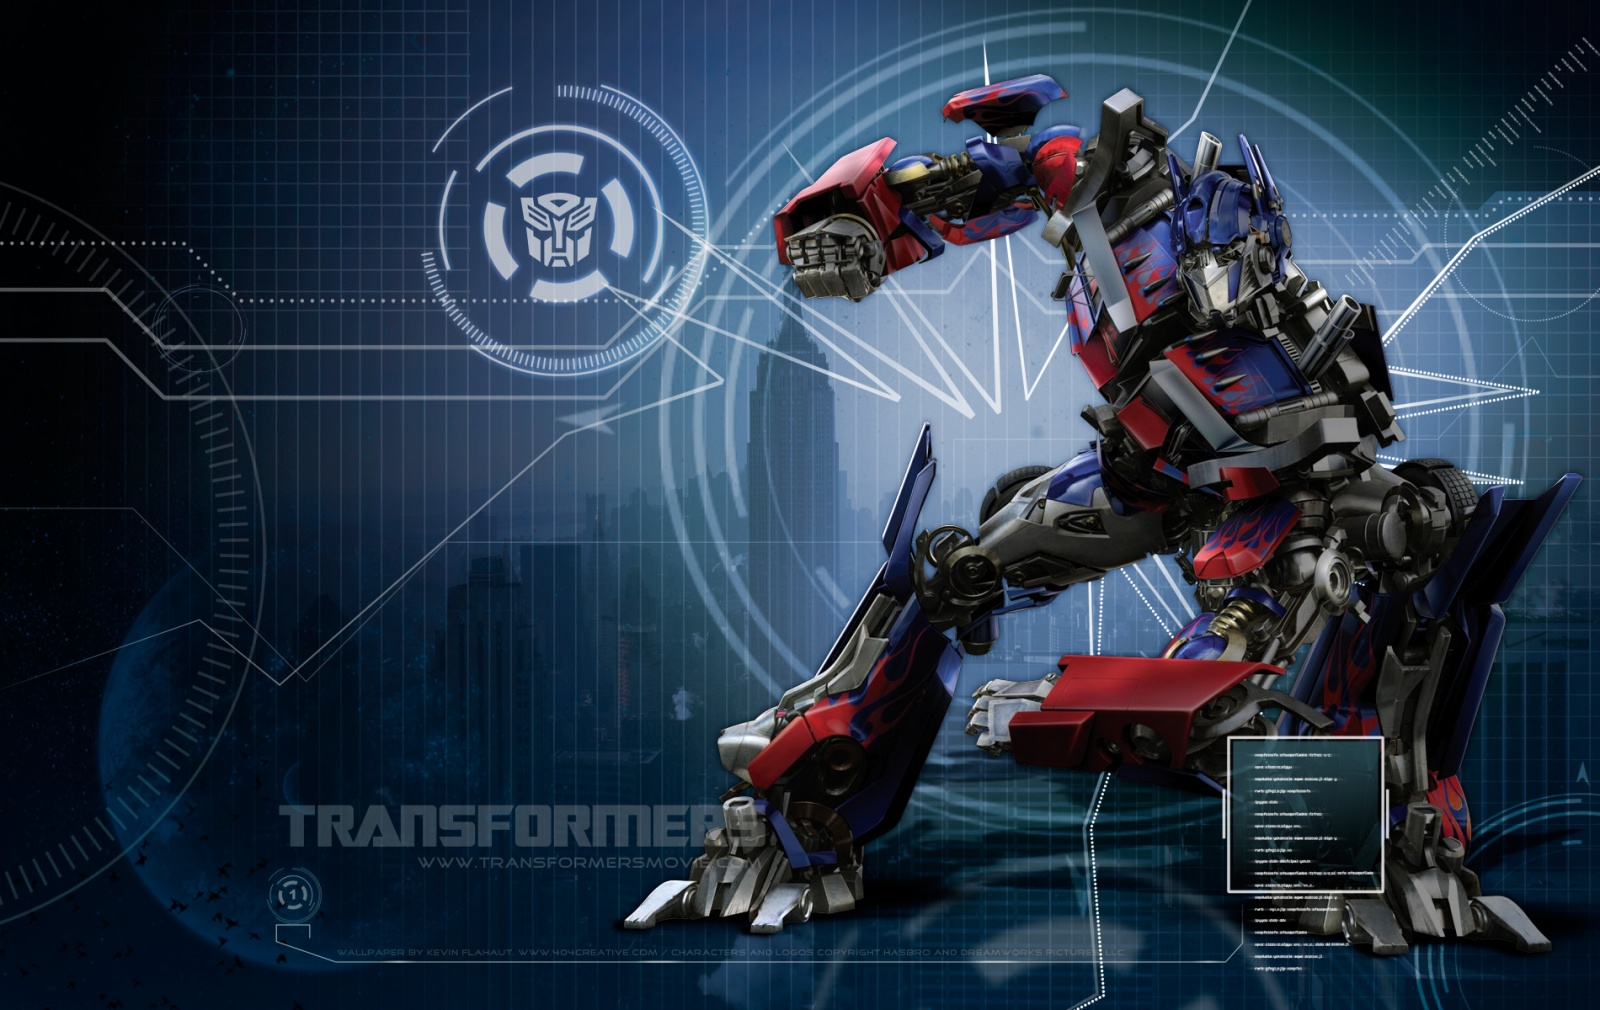 transformers prime wallpapers free download